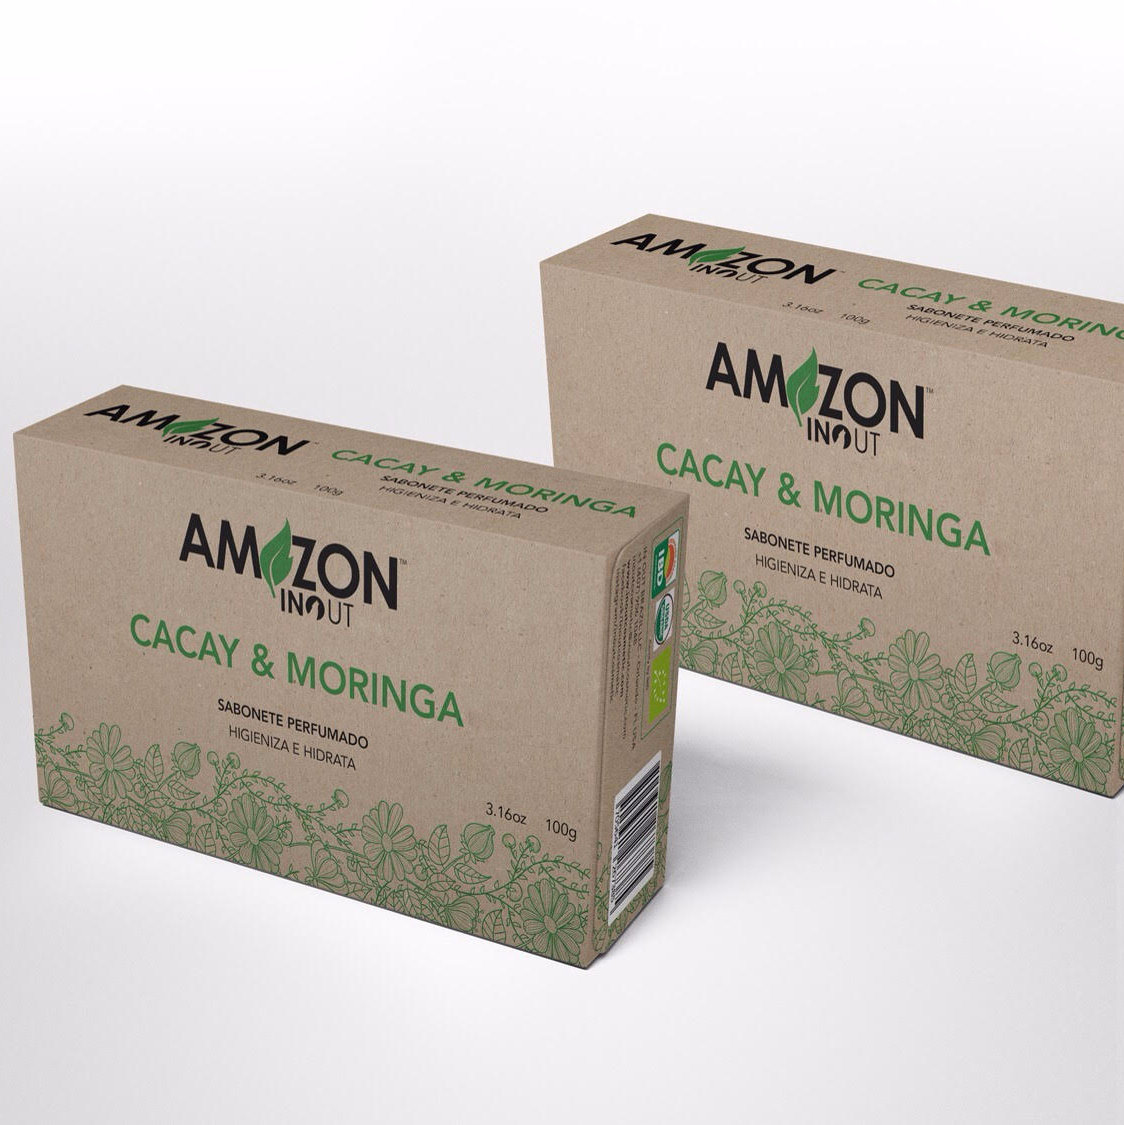 Cacay and Moringa's Oil Vegetable Soap Amazon In Out 100g